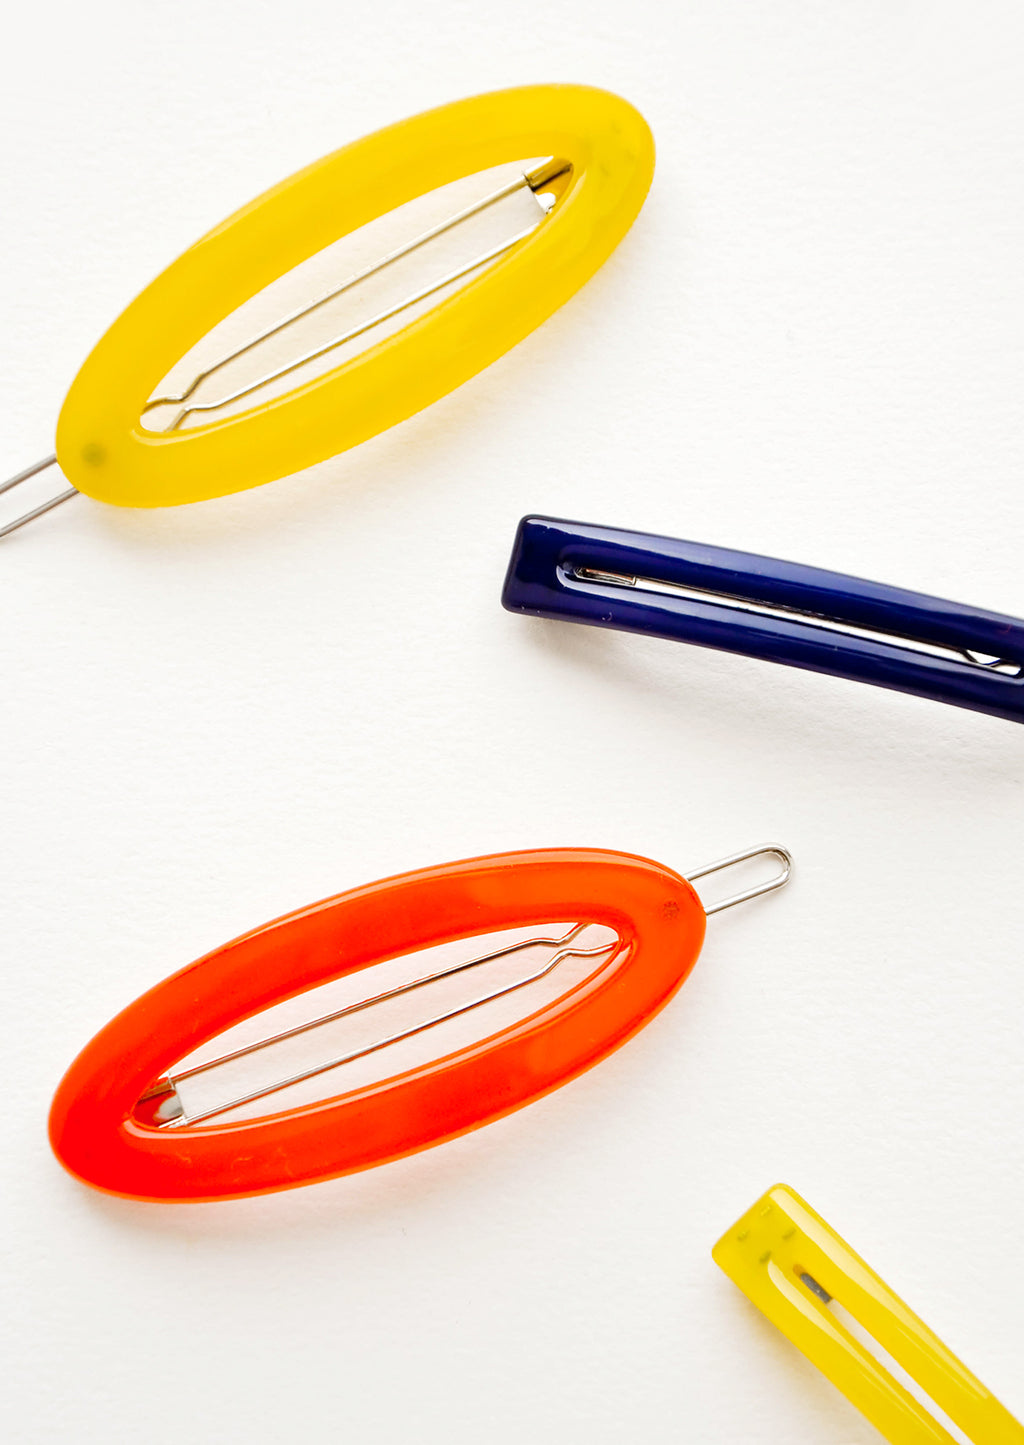 1: Four hair clips in yellow orange and blue